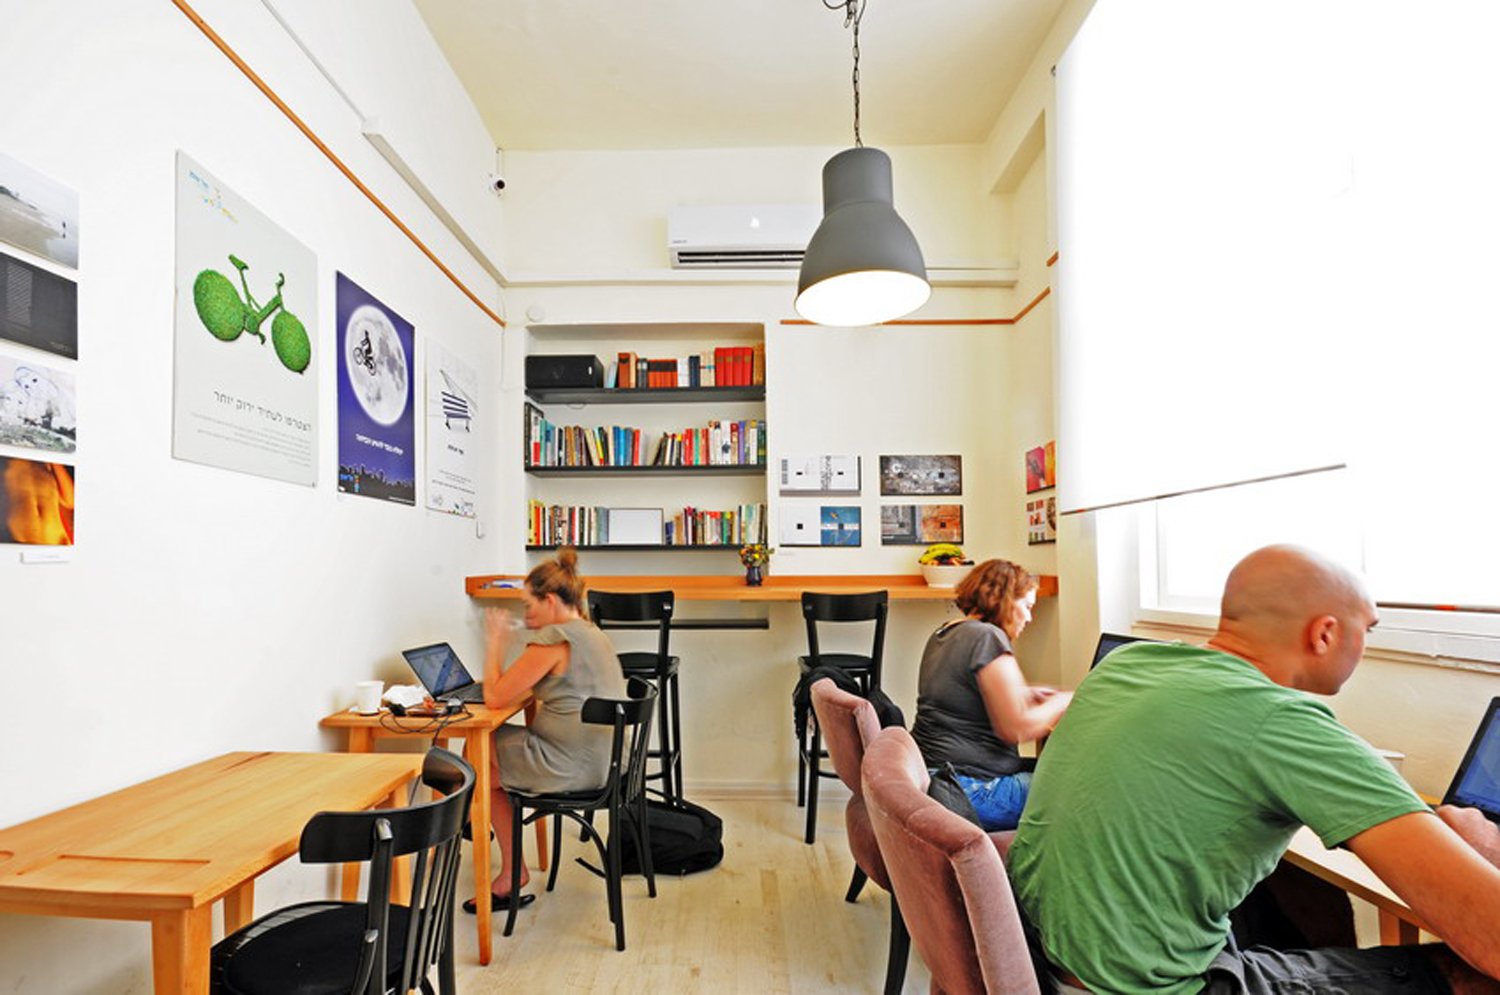 """Click photo to download. Caption: """"Misanthrope,"""" a shared workspace in Tel Aviv that is a haven for Israeli writers. In return for a small hourly fee, Misanthrope customers enjoy unlimited free coffee, fresh fruit, WiFi, and a comfortable public quiet space to work on personal projects. Credit: Misanthrope.                0    0    1    24    136    JNS    1    1    159    14.0                          Normal    0                false    false    false       EN-US    JA    X-NONE                                                                                                                                                                                                                                                                                                                                                                                                                                                                                                                             /* Style Definitions */ table.MsoNormalTable {mso-style-name:""""Table Normal""""; mso-tstyle-rowband-size:0; mso-tstyle-colband-size:0; mso-style-noshow:yes; mso-style-priority:99; mso-style-parent:""""""""; mso-padding-alt:0in 5.4pt 0in 5.4pt; mso-para-margin:0in; mso-para-margin-bottom:.0001pt; mso-pagination:widow-orphan; font-size:12.0pt; font-family:Cambria; mso-ascii-font-family:Cambria; mso-ascii-theme-font:minor-latin; mso-hansi-font-family:Cambria; mso-hansi-theme-font:minor-latin;}"""